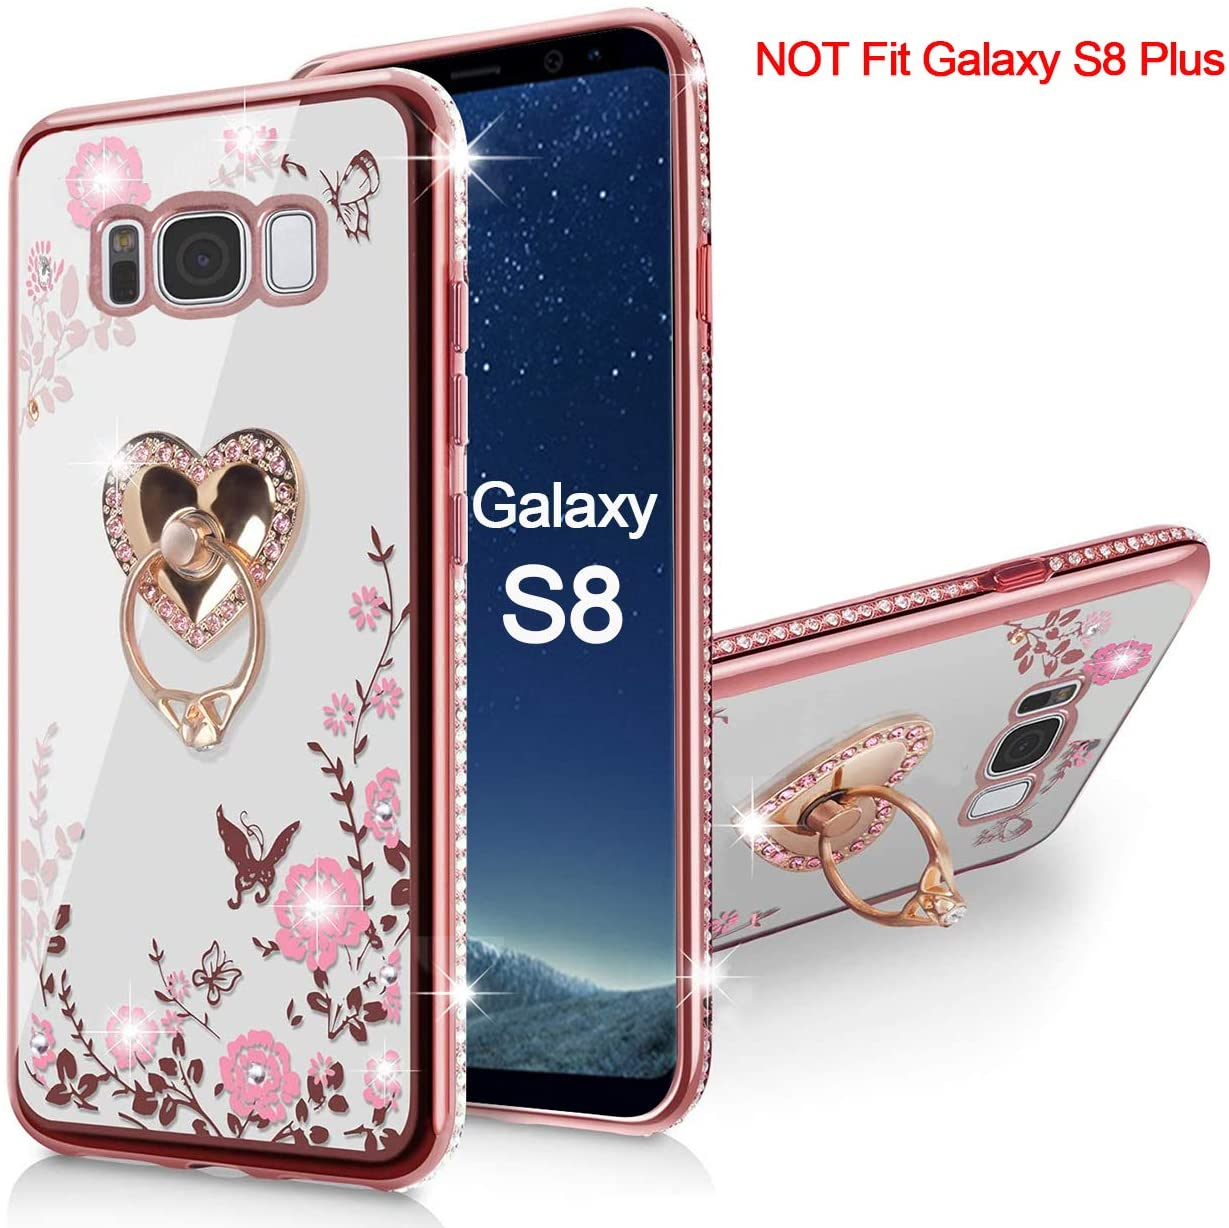 Samsung Galaxy S8 Case, Glitter Crystal Butterfly Heart Floral Cute for Girls Shiny Bling Soft TPU Silicone Protective Cover Clear Case with Ring Stand Holder for Samsung Galaxy S8 (Rose Gold)